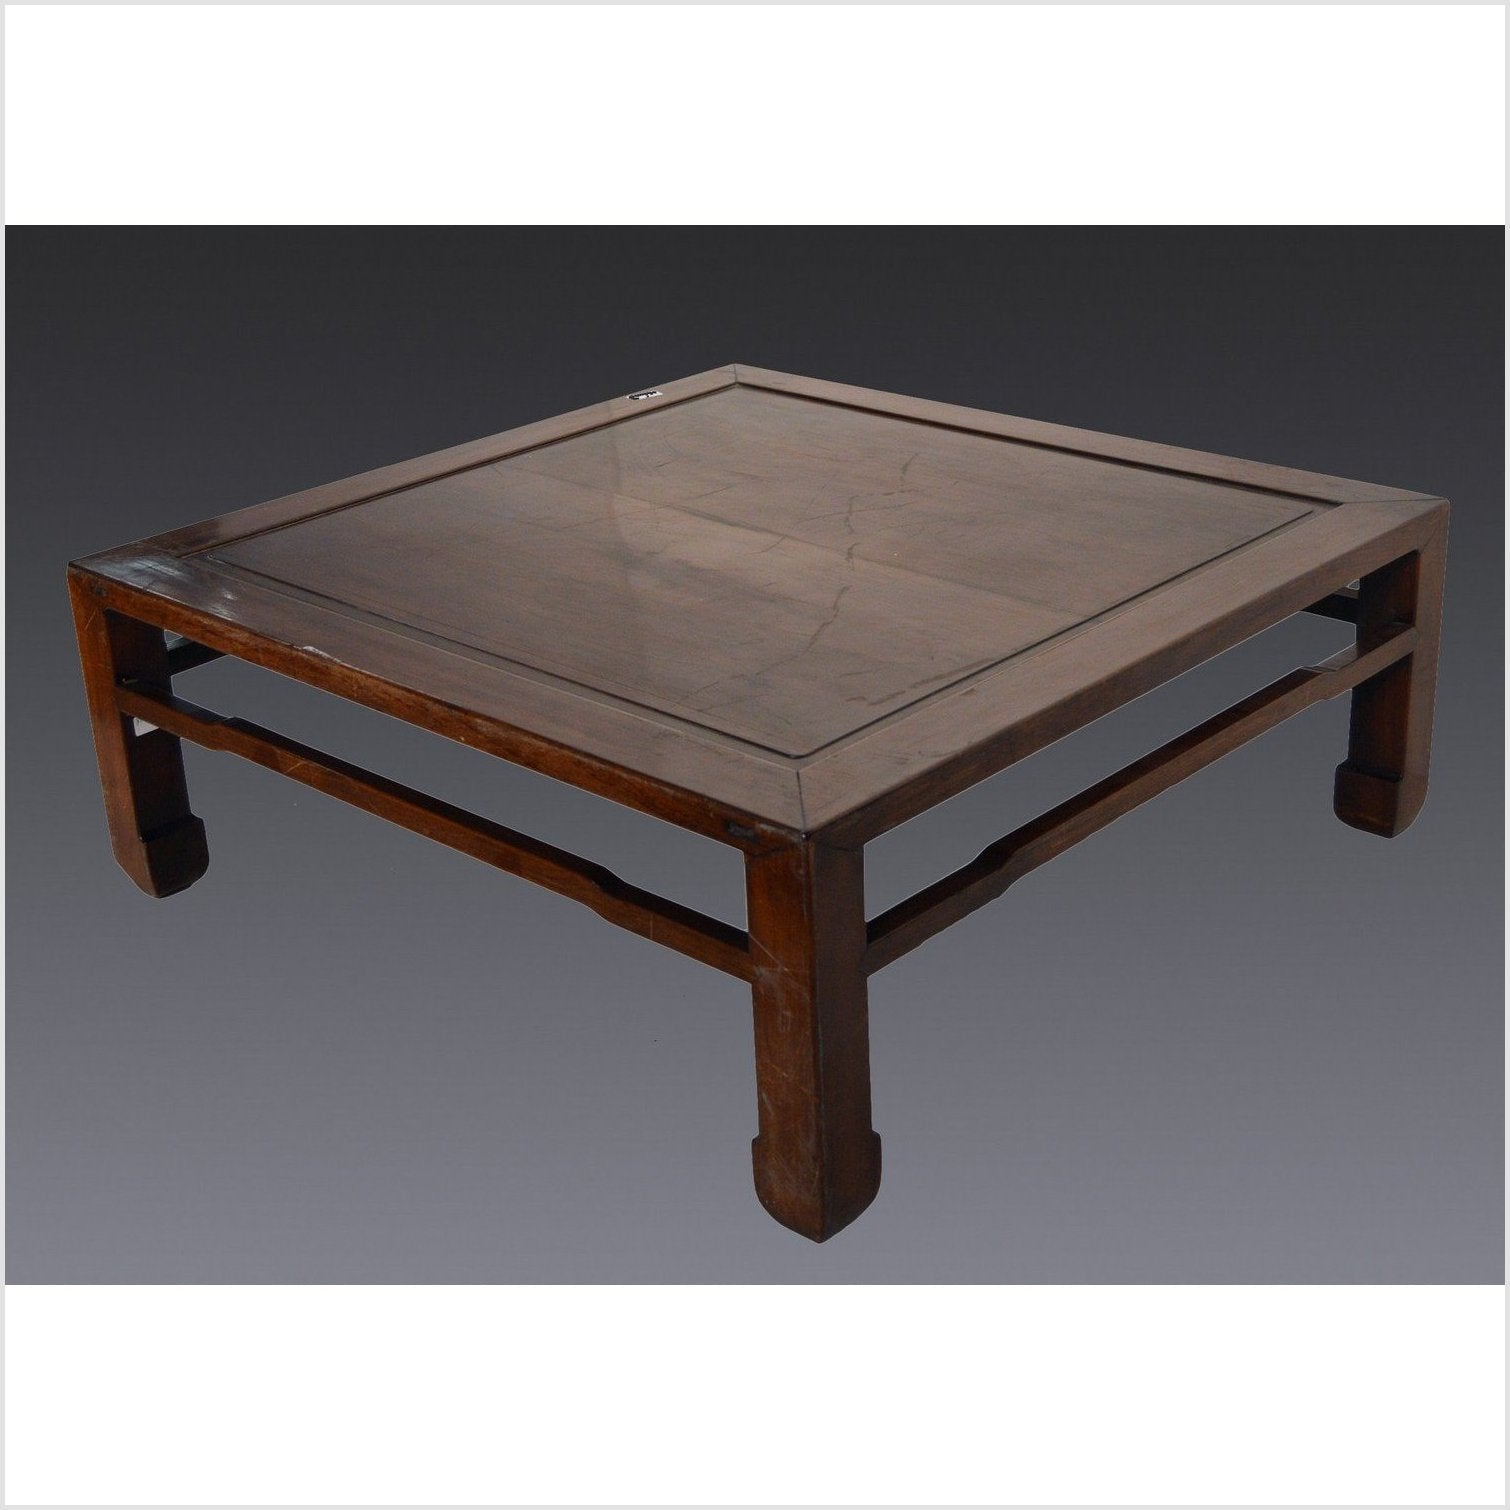 Square Coffee Table with Horsehoof Legs